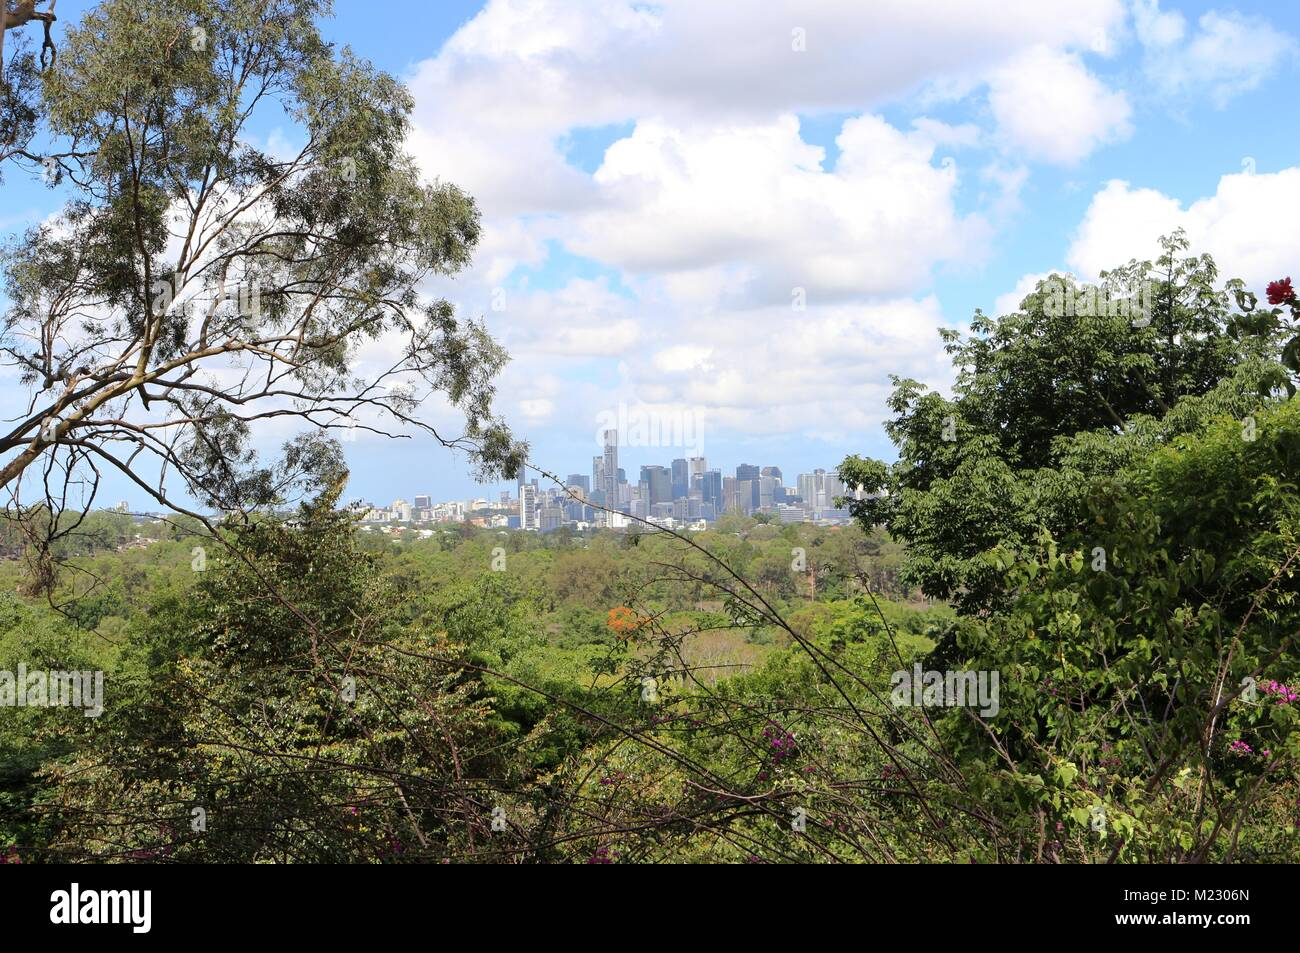 Brisbane City view through the bush - Stock Image